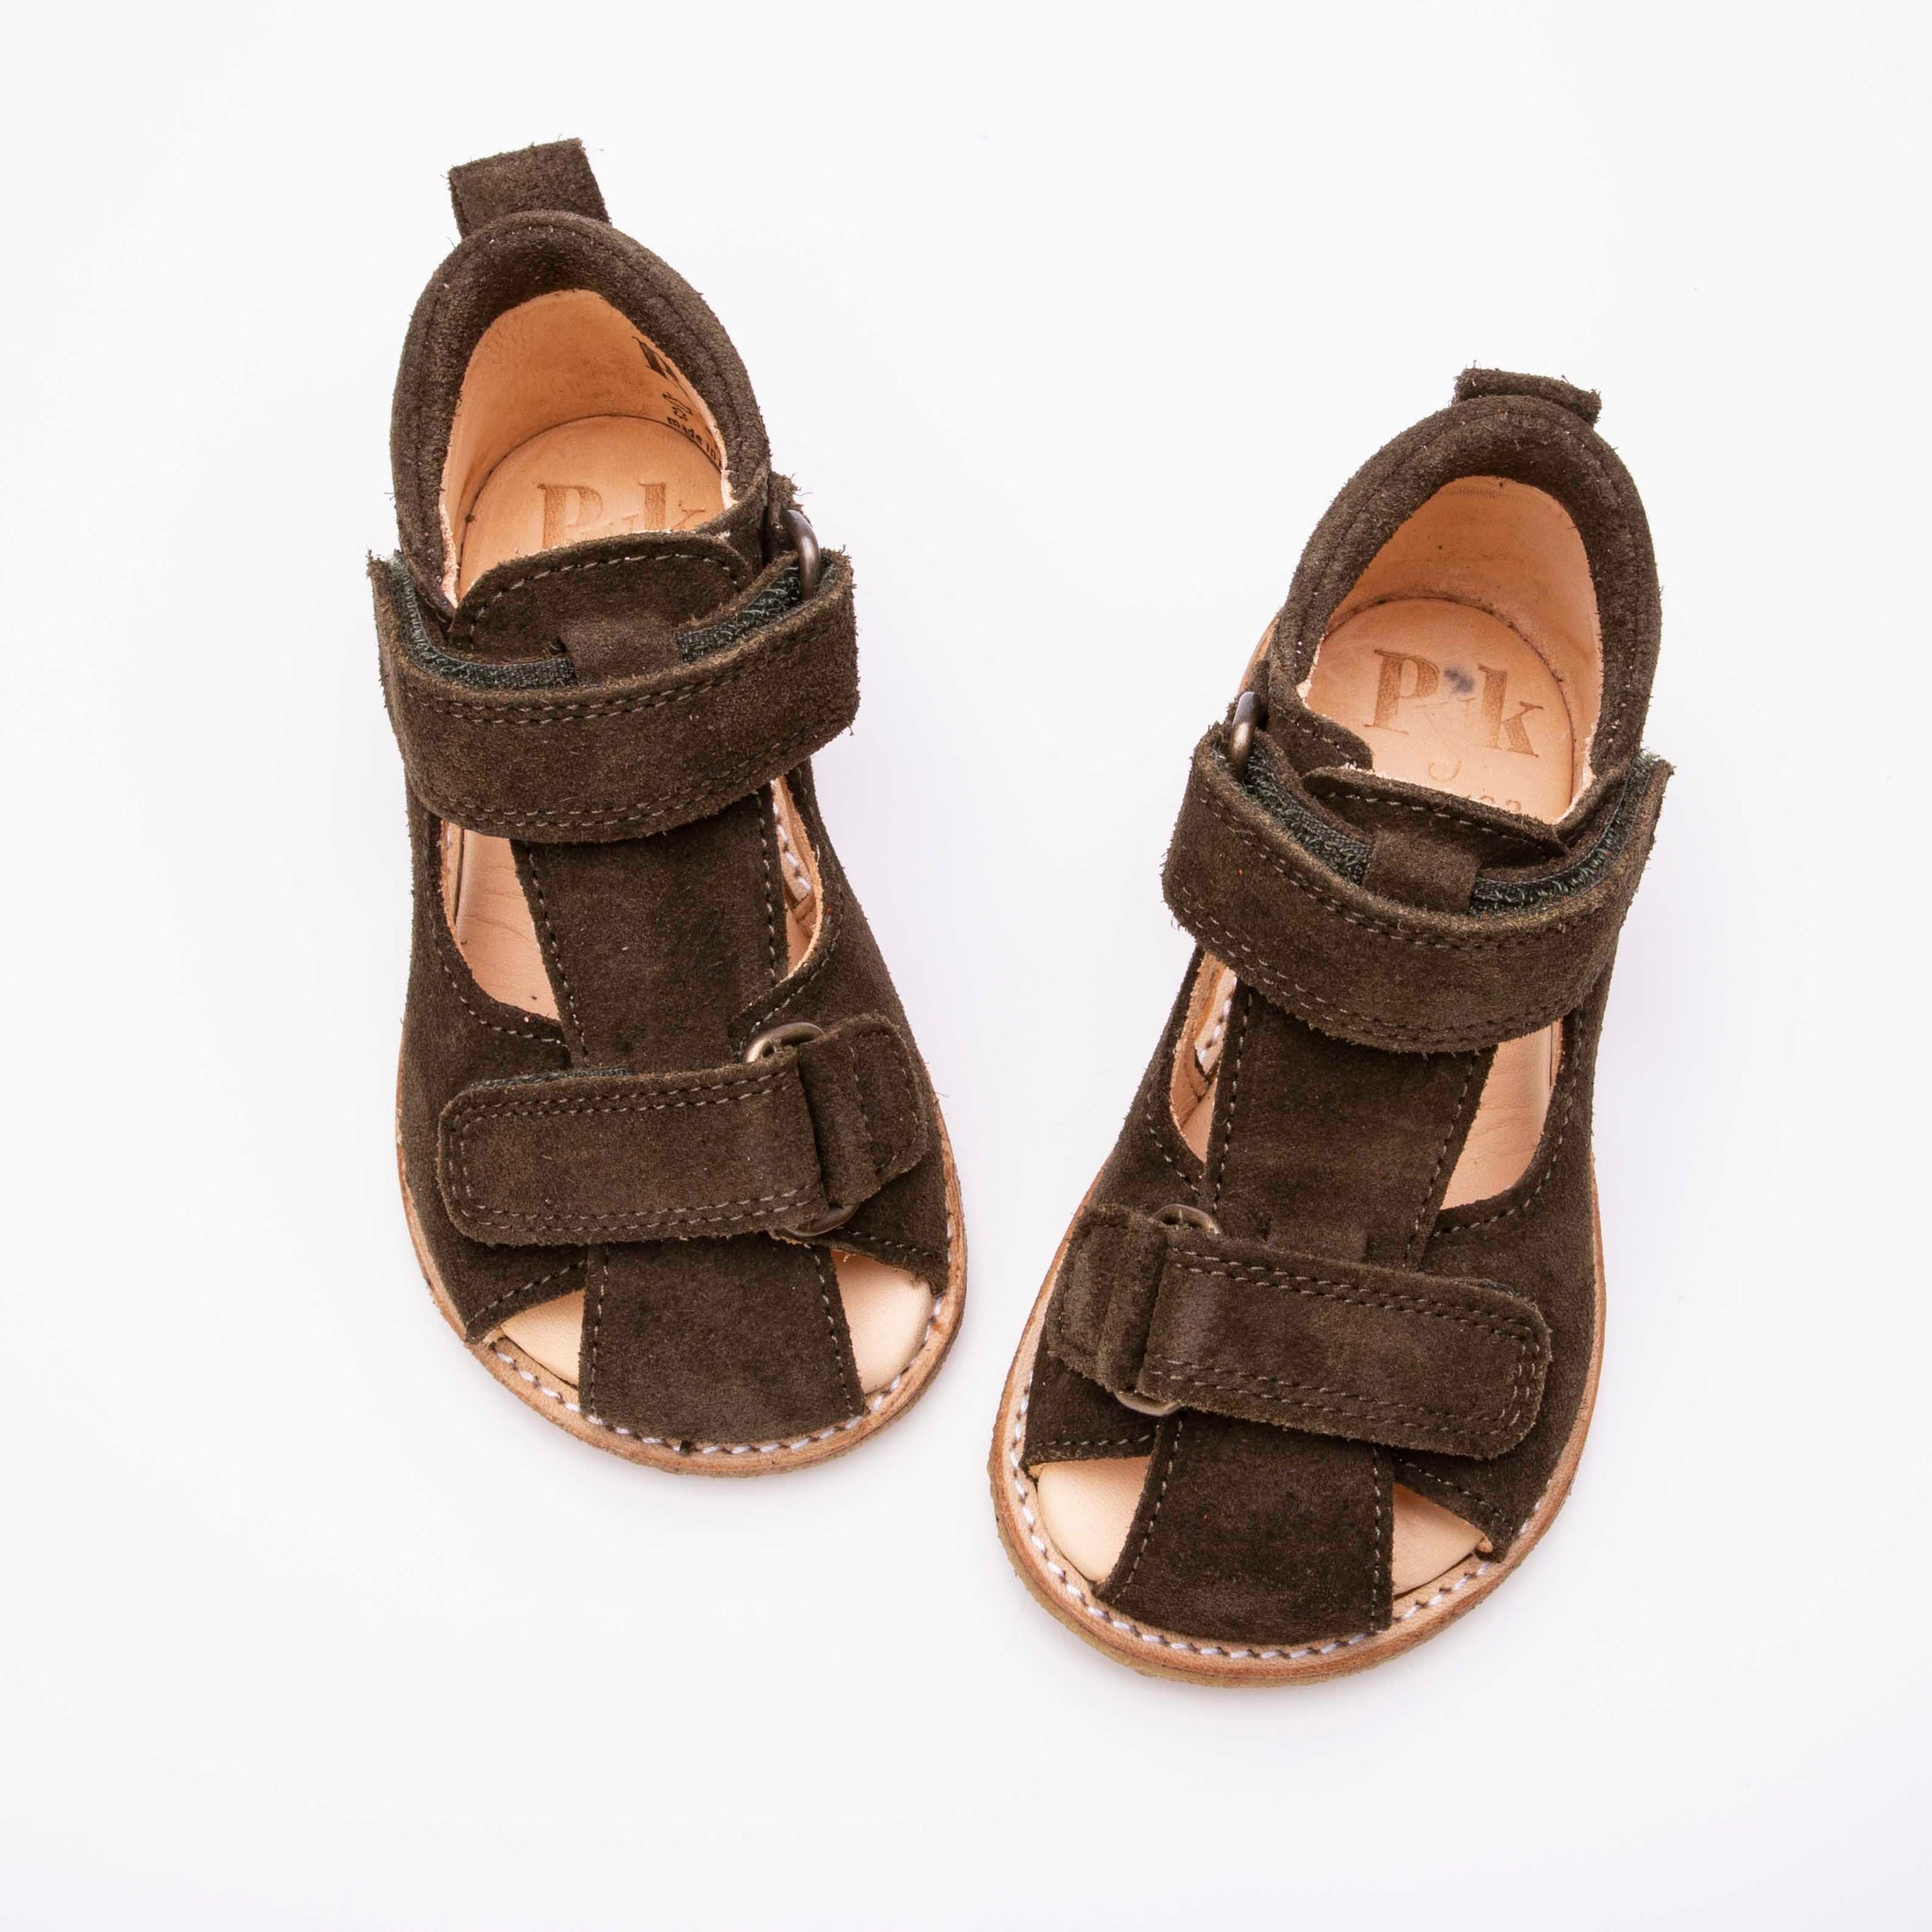 Bernhard Army Misket sandals for children Pyk Copenhagen